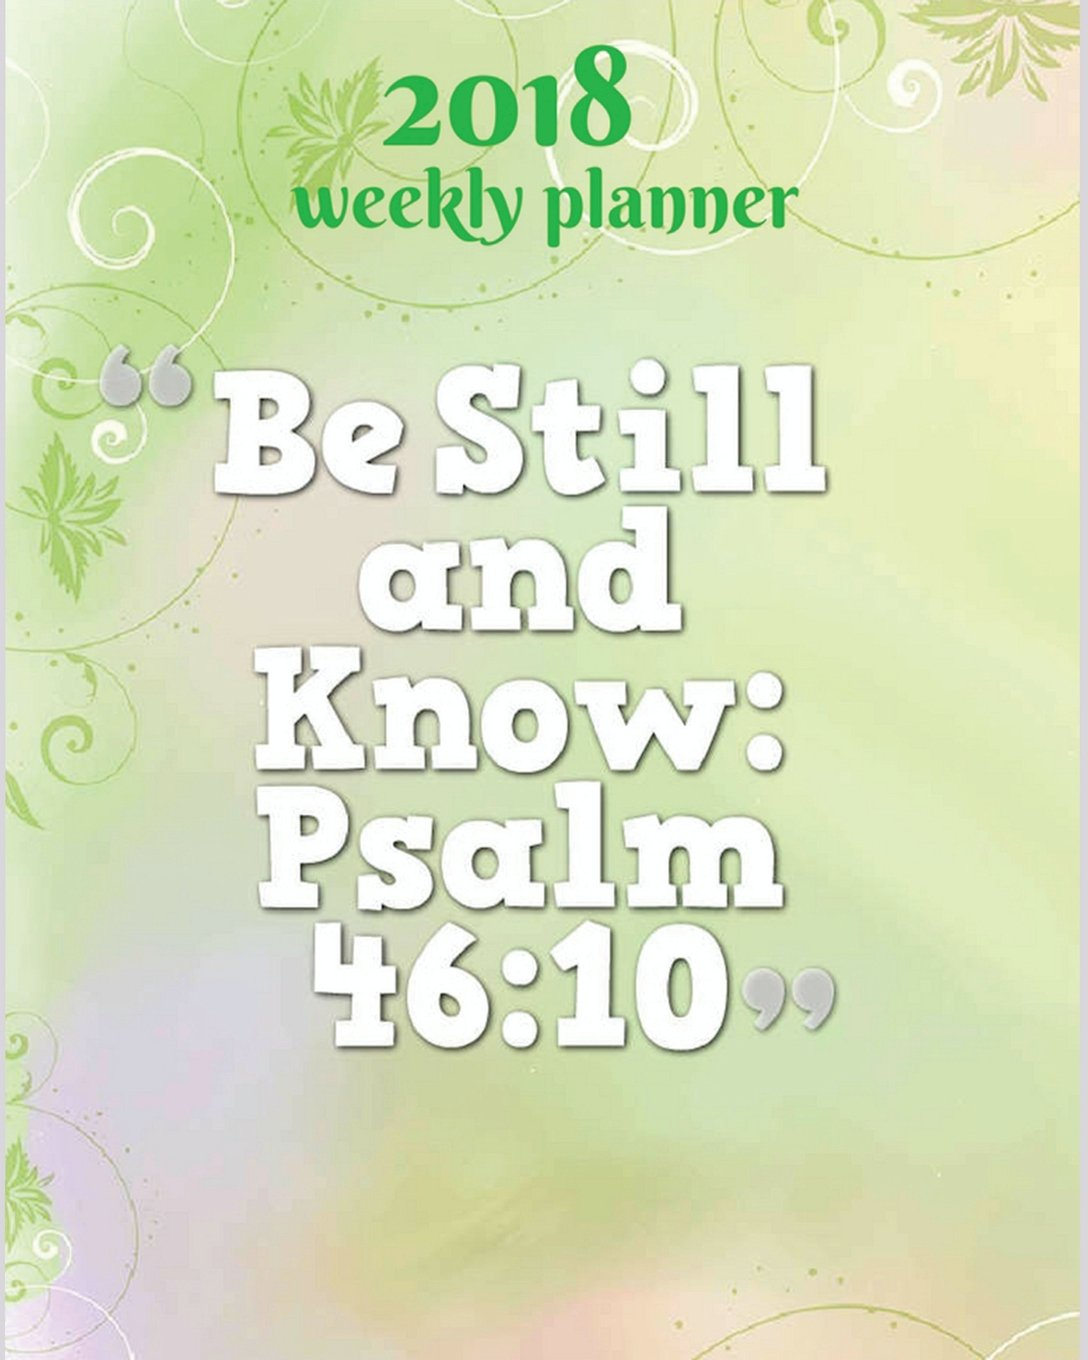 2018 Weekly Planner : Be Still and Know - Psalm 46:10: 2018 Planner Weekly And Monthly: 365 Daily Planner Calendar Schedule Organizer, Journal, ... Bible Verse Quote Weekly Planner) (Volume 7). pdf epub